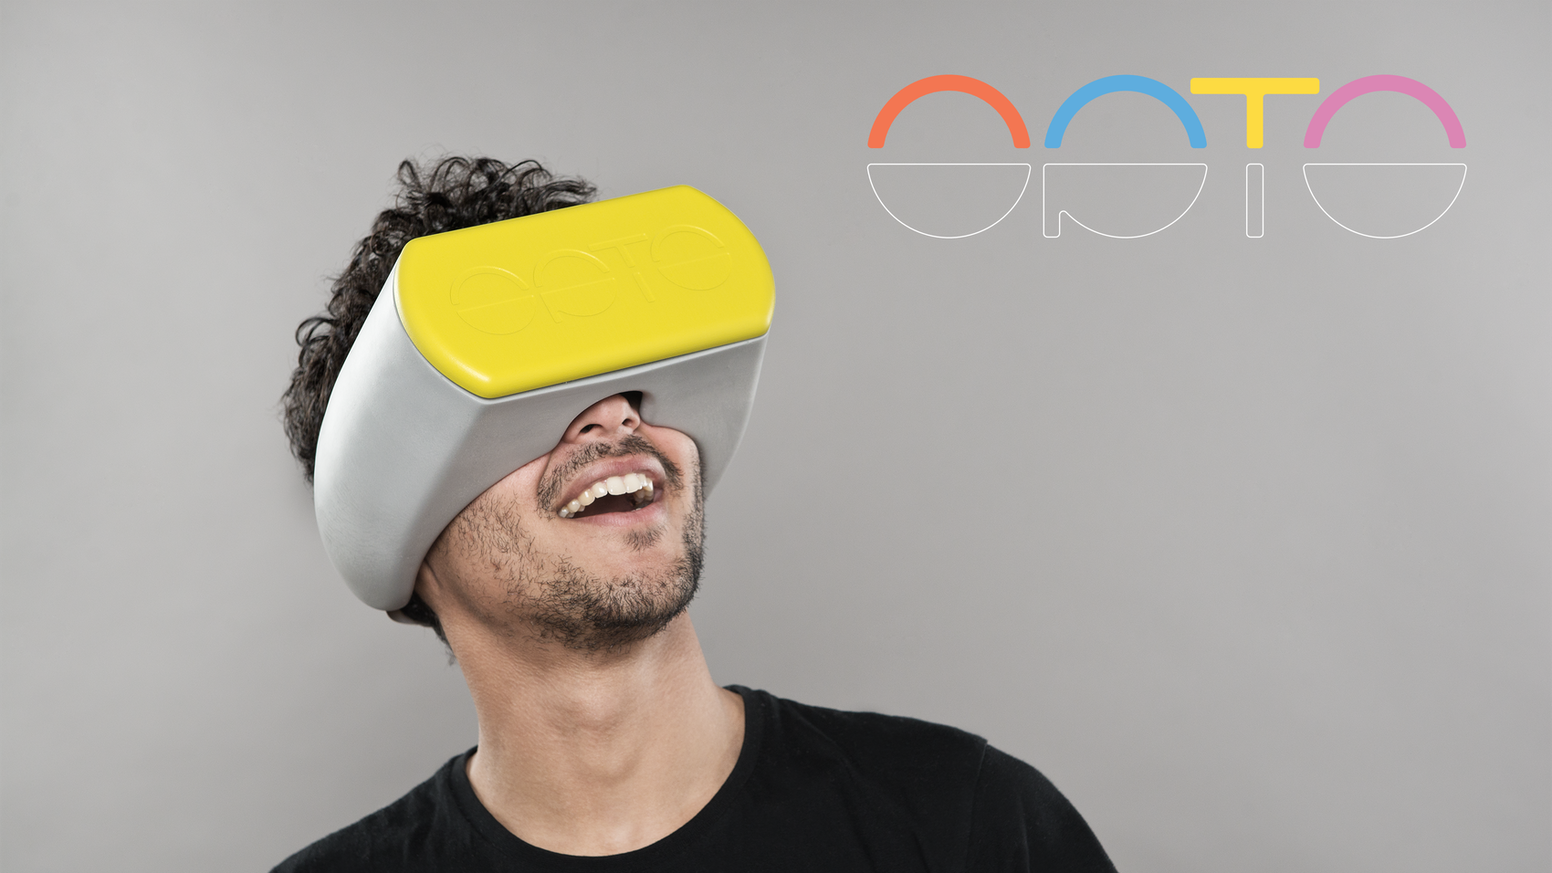 The first portable VR headset with built-in audio. An all-in-one device to enjoy movies, games, photos & more